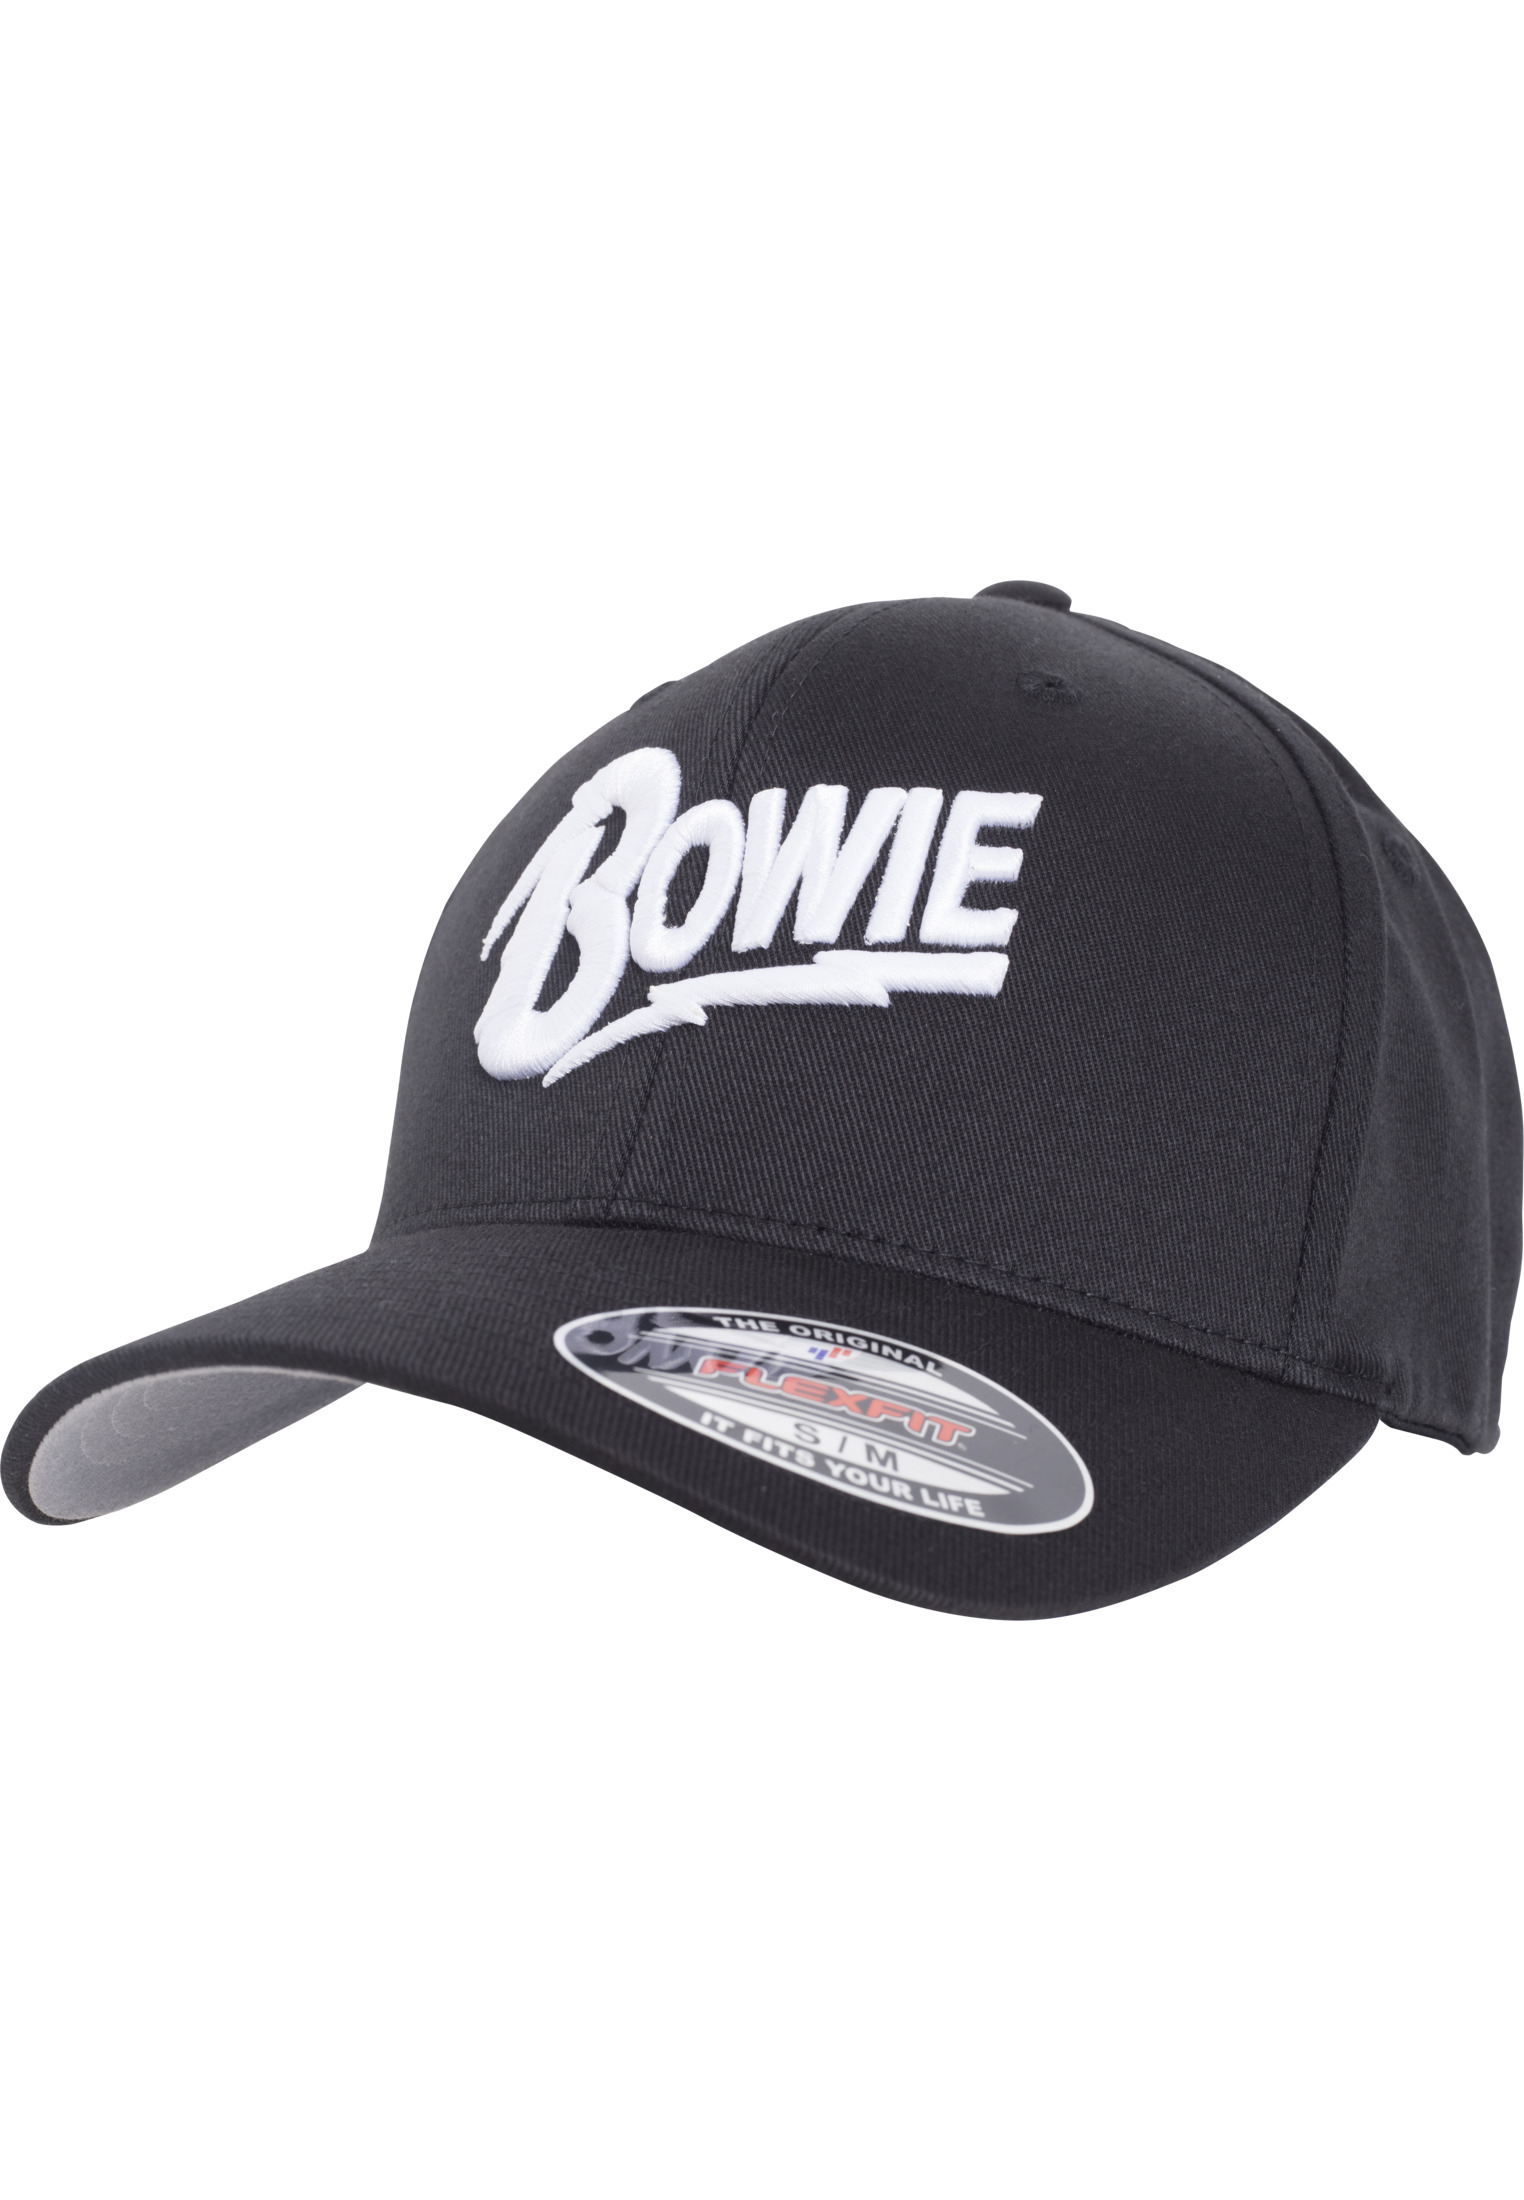 Merchcode David Bowie Flexfit Cap black - L/XL